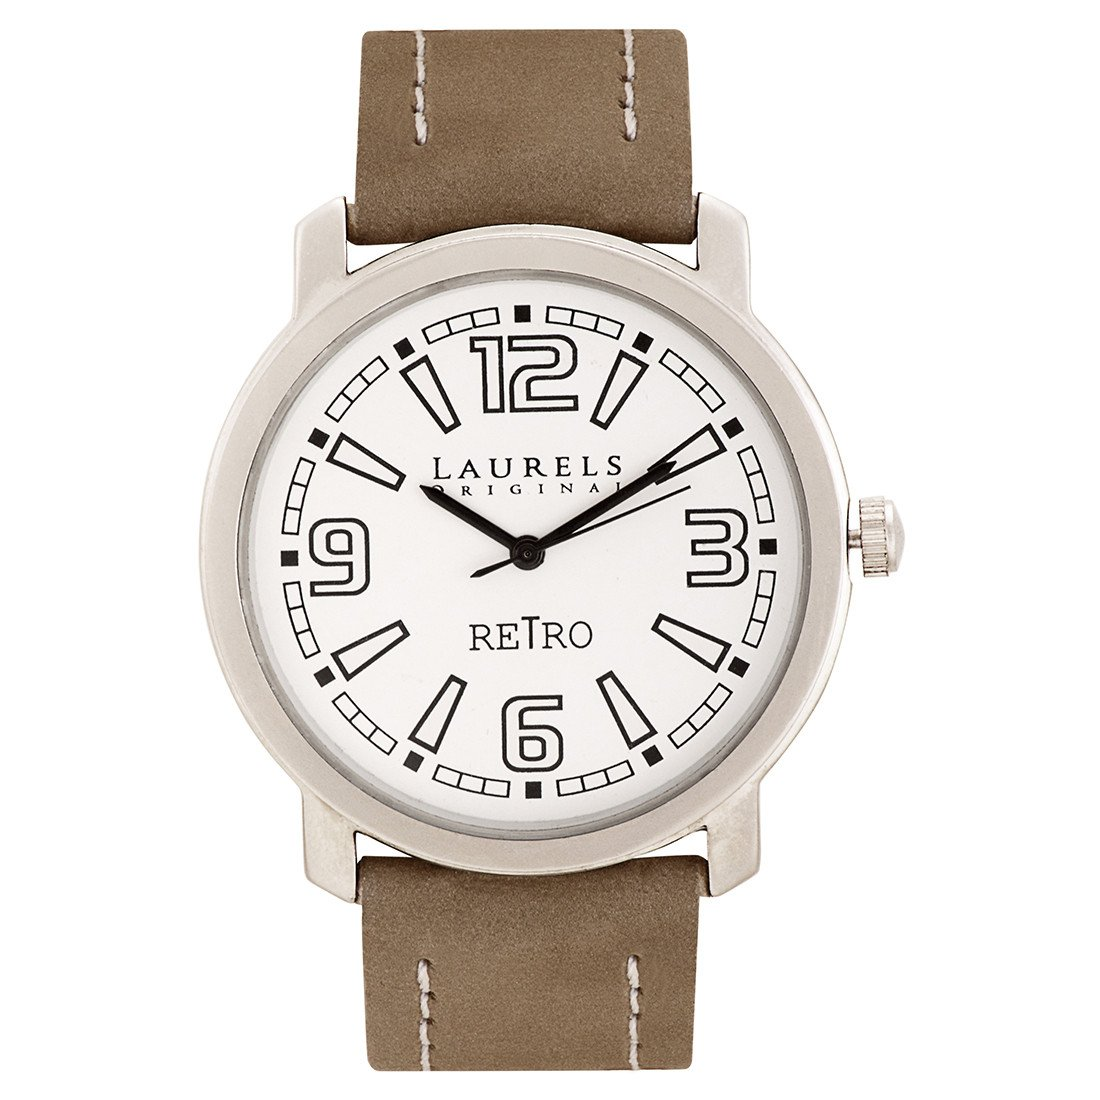 Buy Laurels Retro 1 Analog Silver Dial Mens Watch Lo Ret 101 Voucer Shodaqo Nuril Online At Low Prices In India